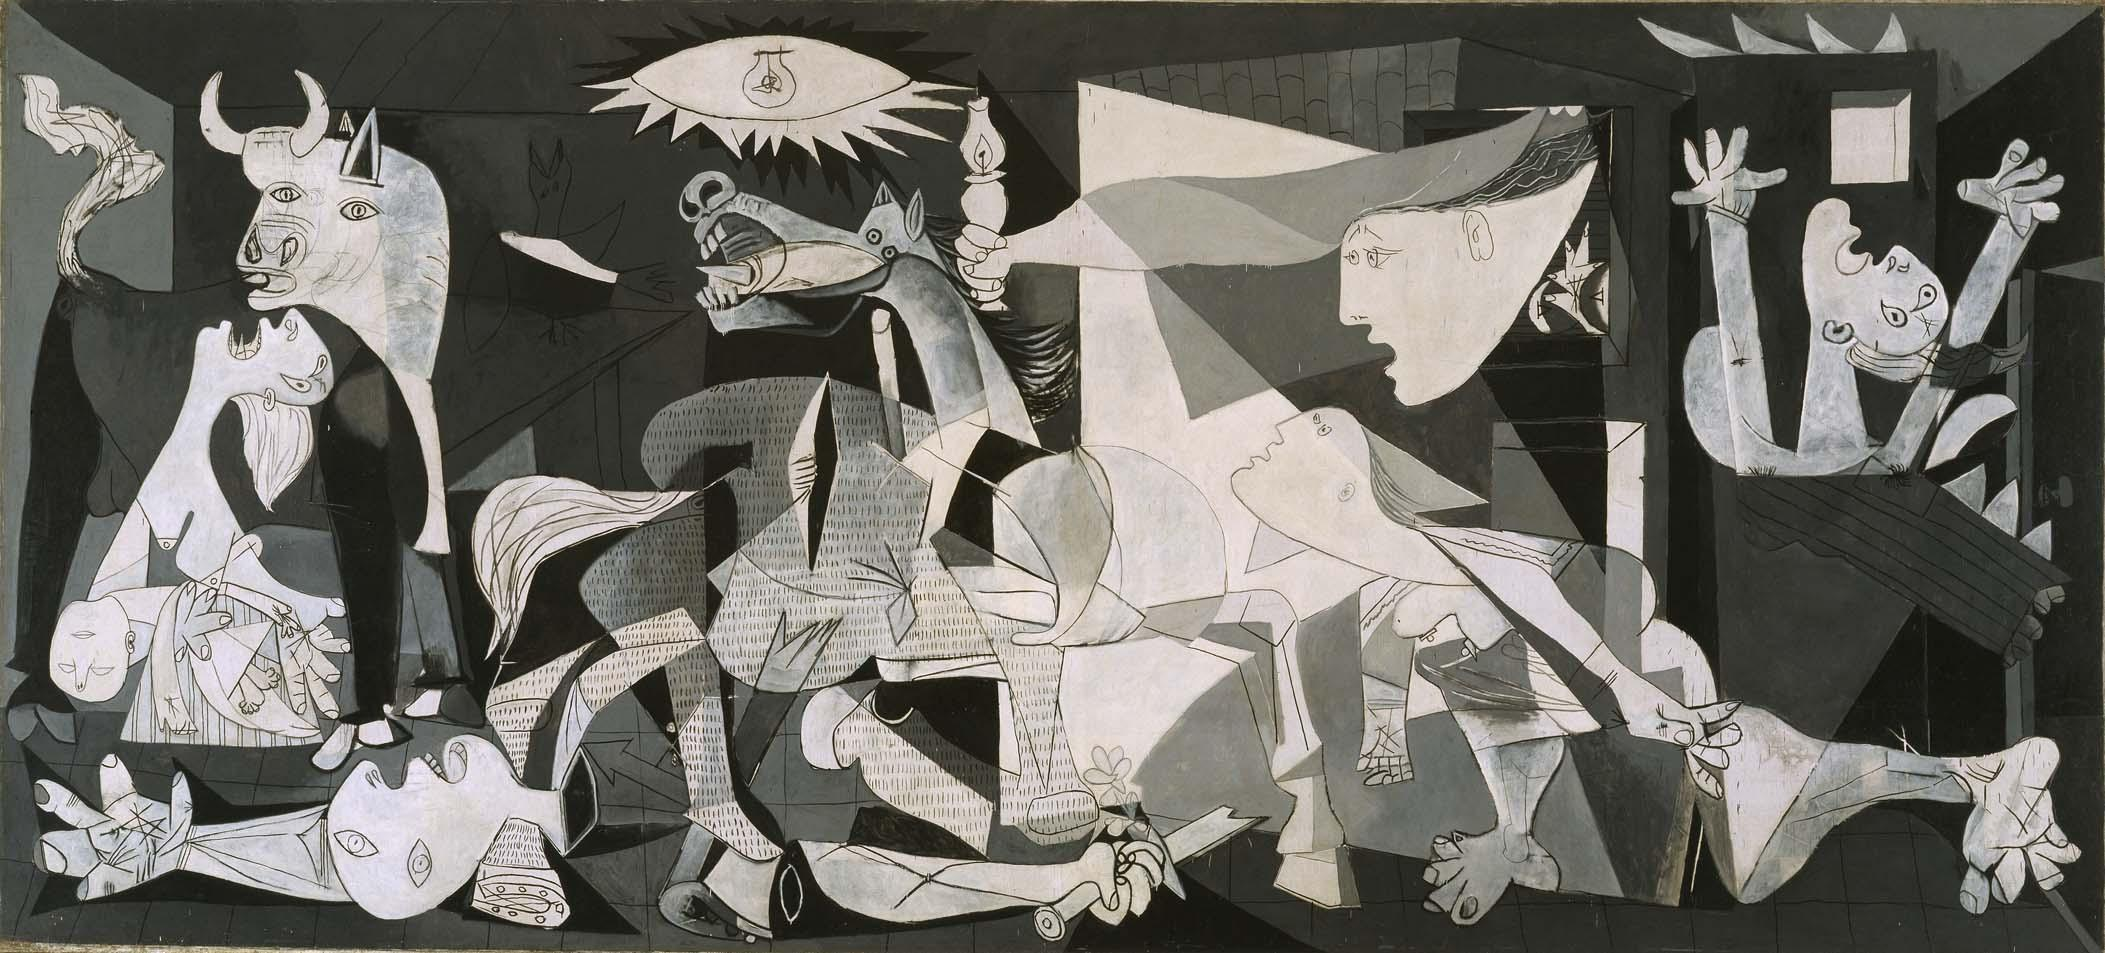 Pablo Picasso S Guernica Was An Exercise In Painting